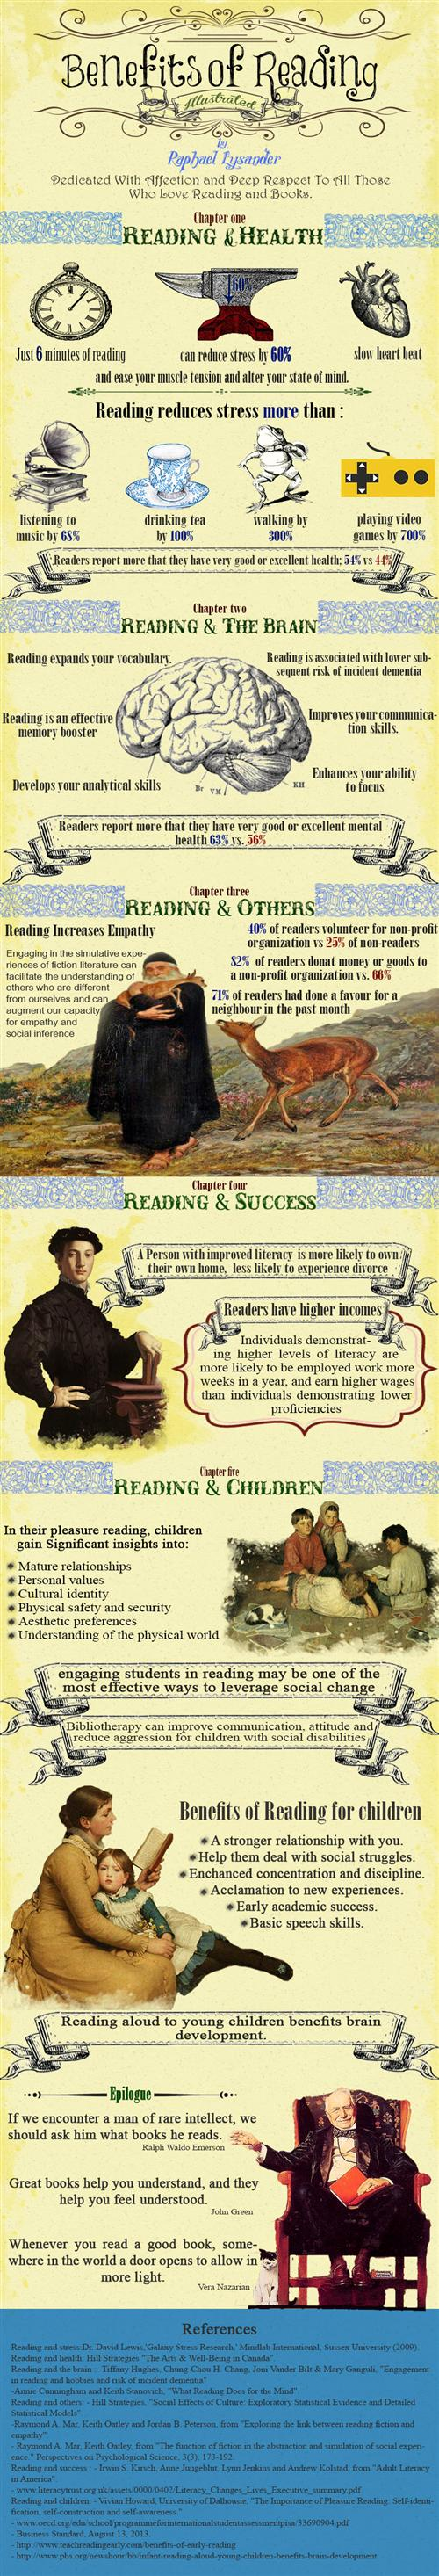 Benefits of Reading Infographic image